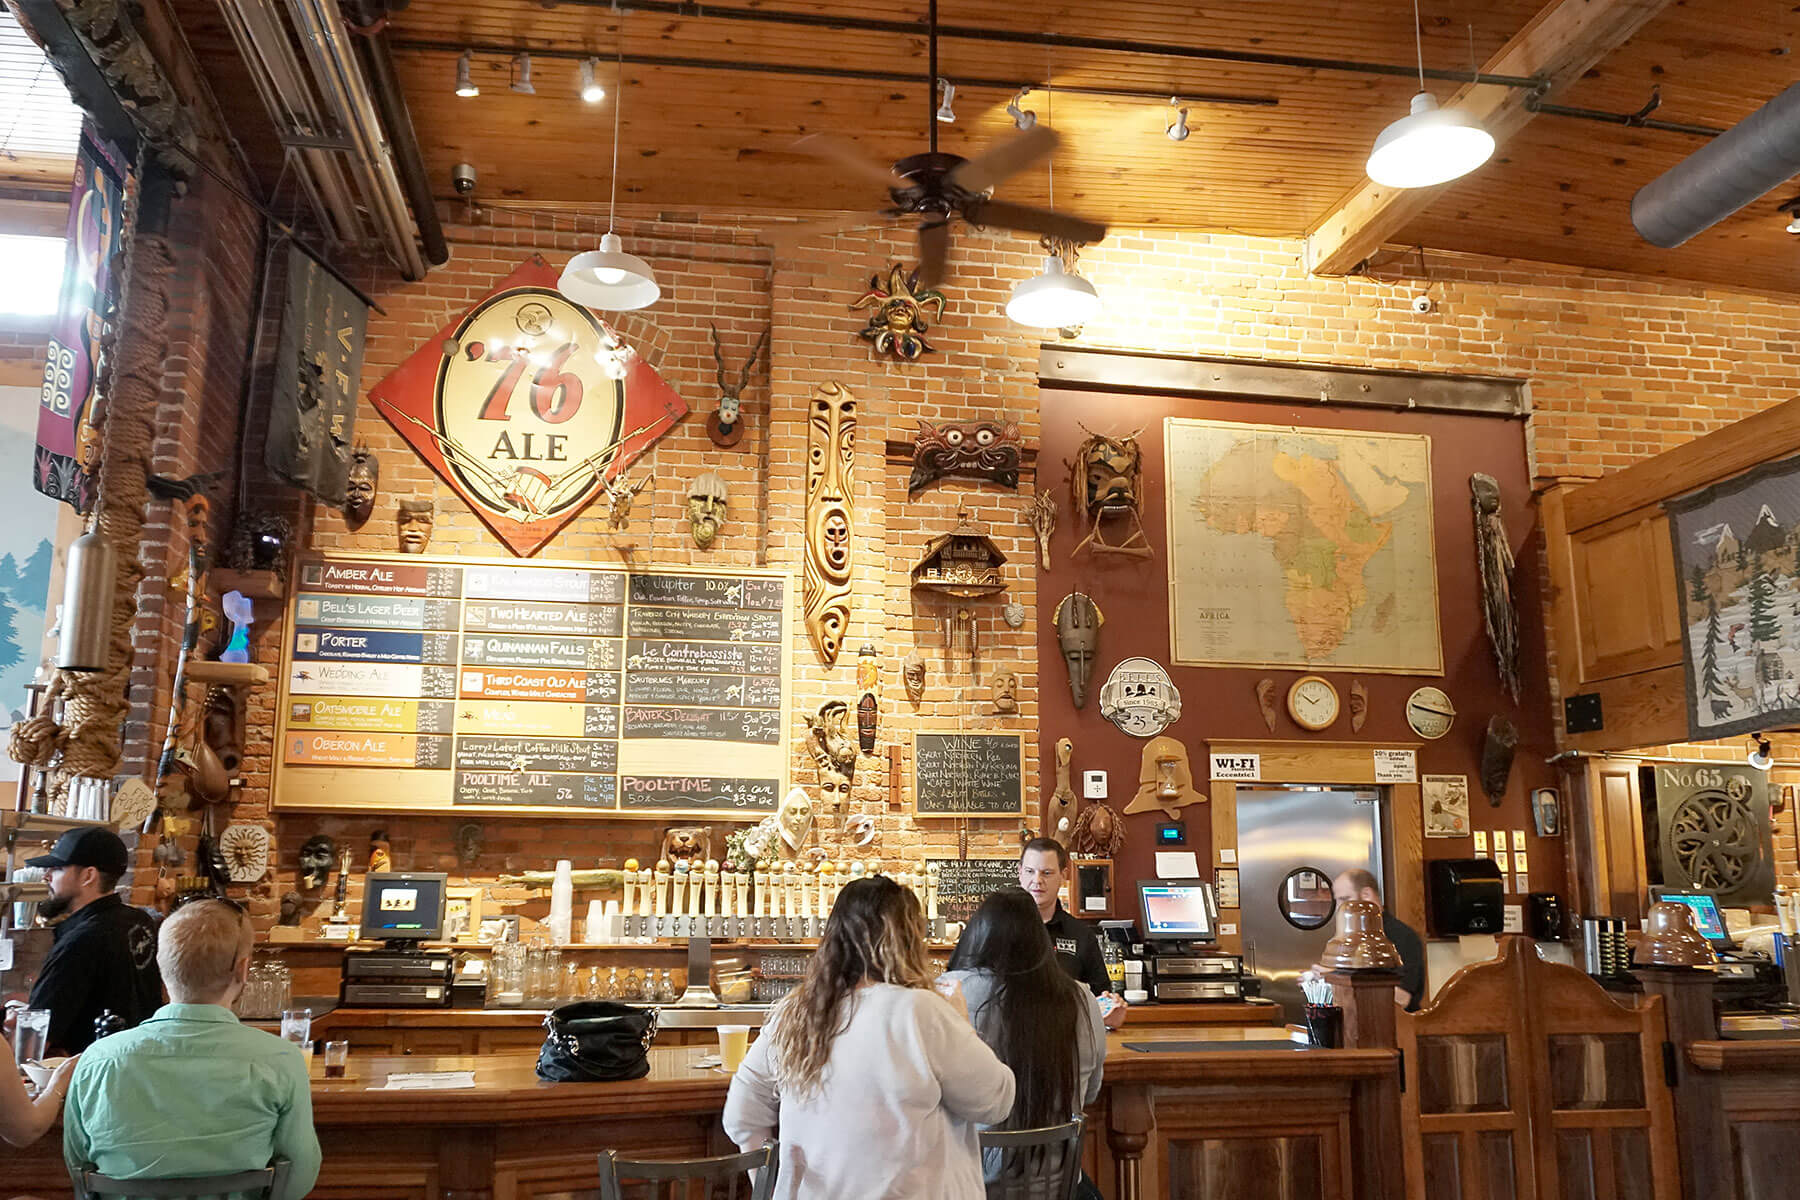 Inside the brewpub at the Bell's Brewery, Inc. Eccentric Cafe location in Kalamazoo, Michigan